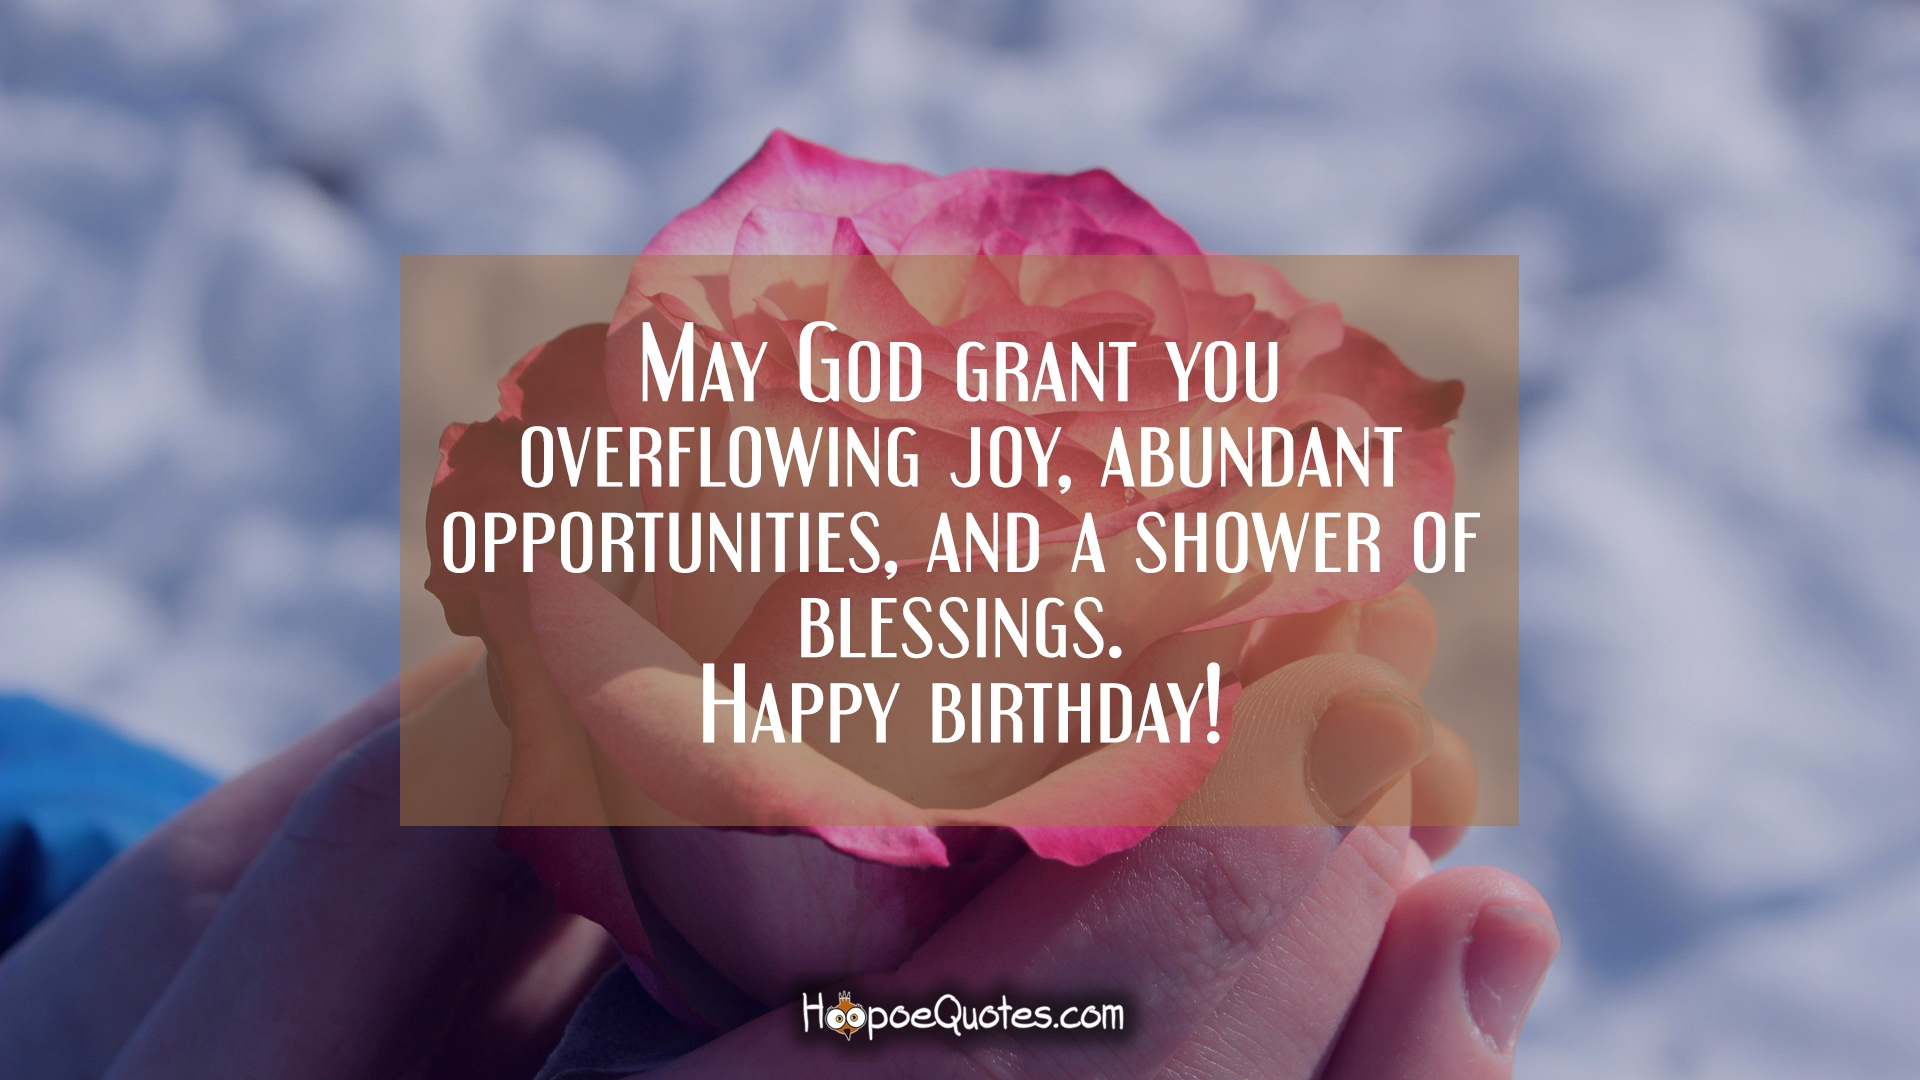 Christian birthday wishes religious birthday messages and